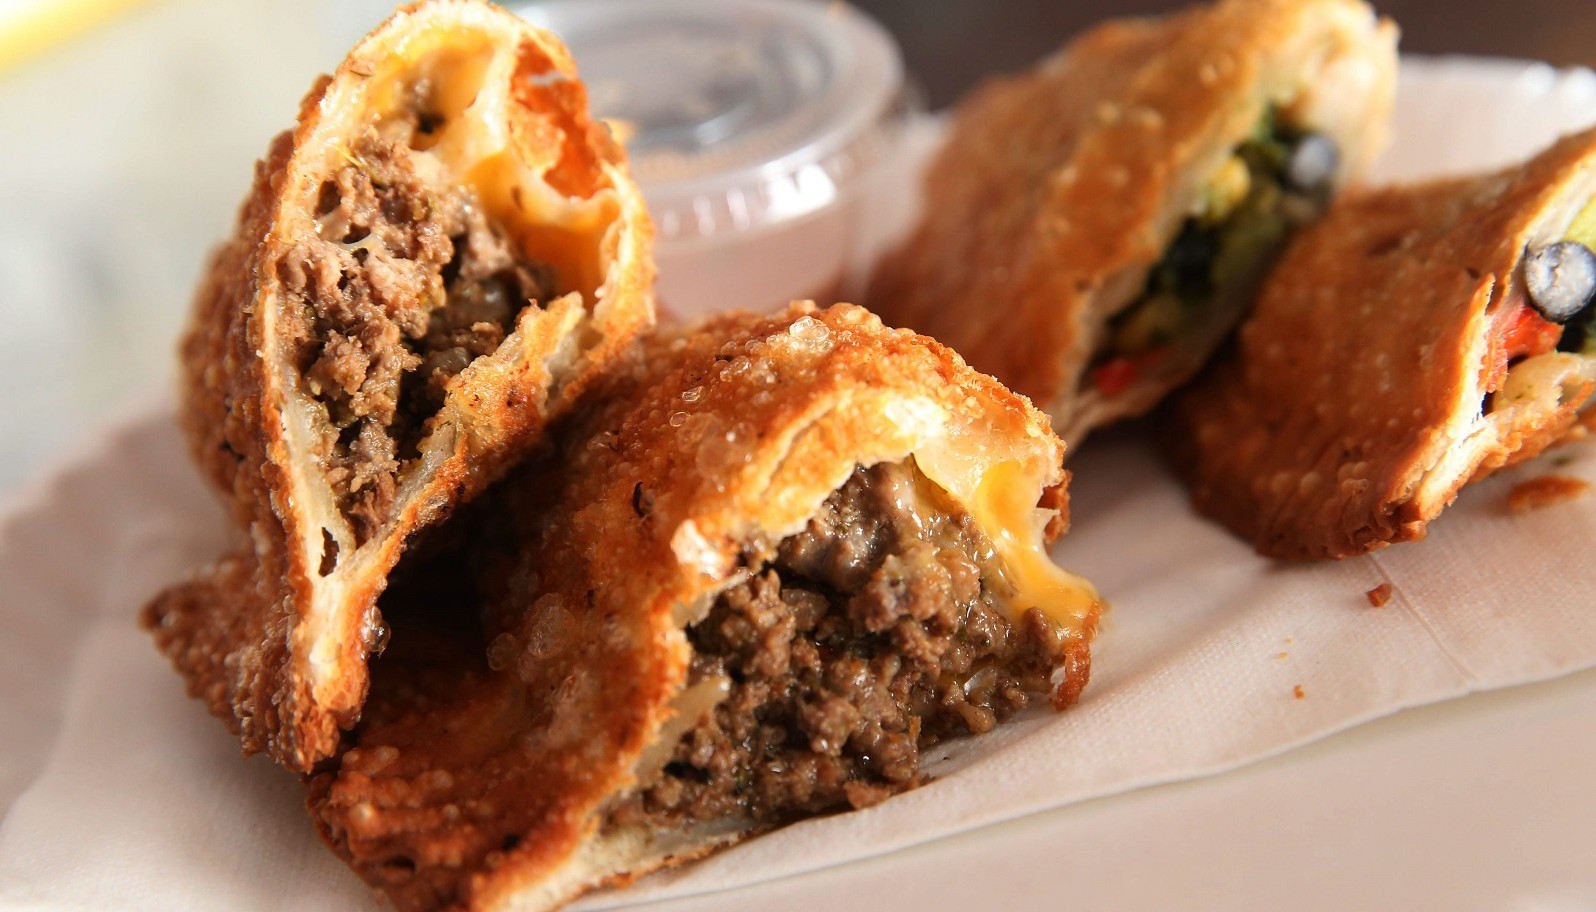 On the left is the beef and cheese empanada from La Gourmet Empanadas. (Sharon Cantillon/Buffalo News)